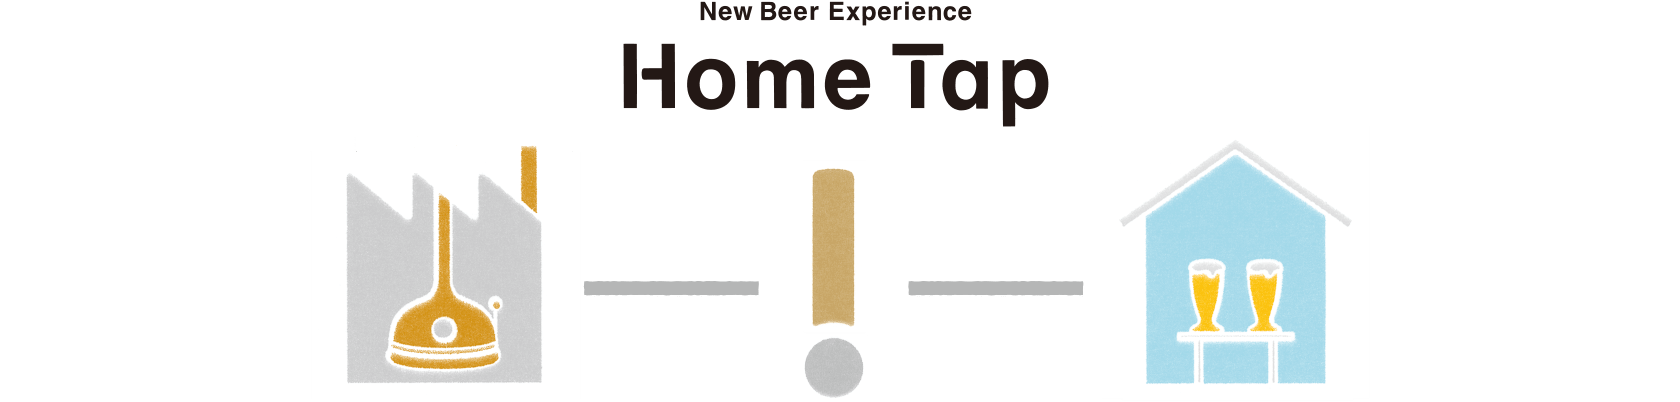 New Beer Experience Home Tap